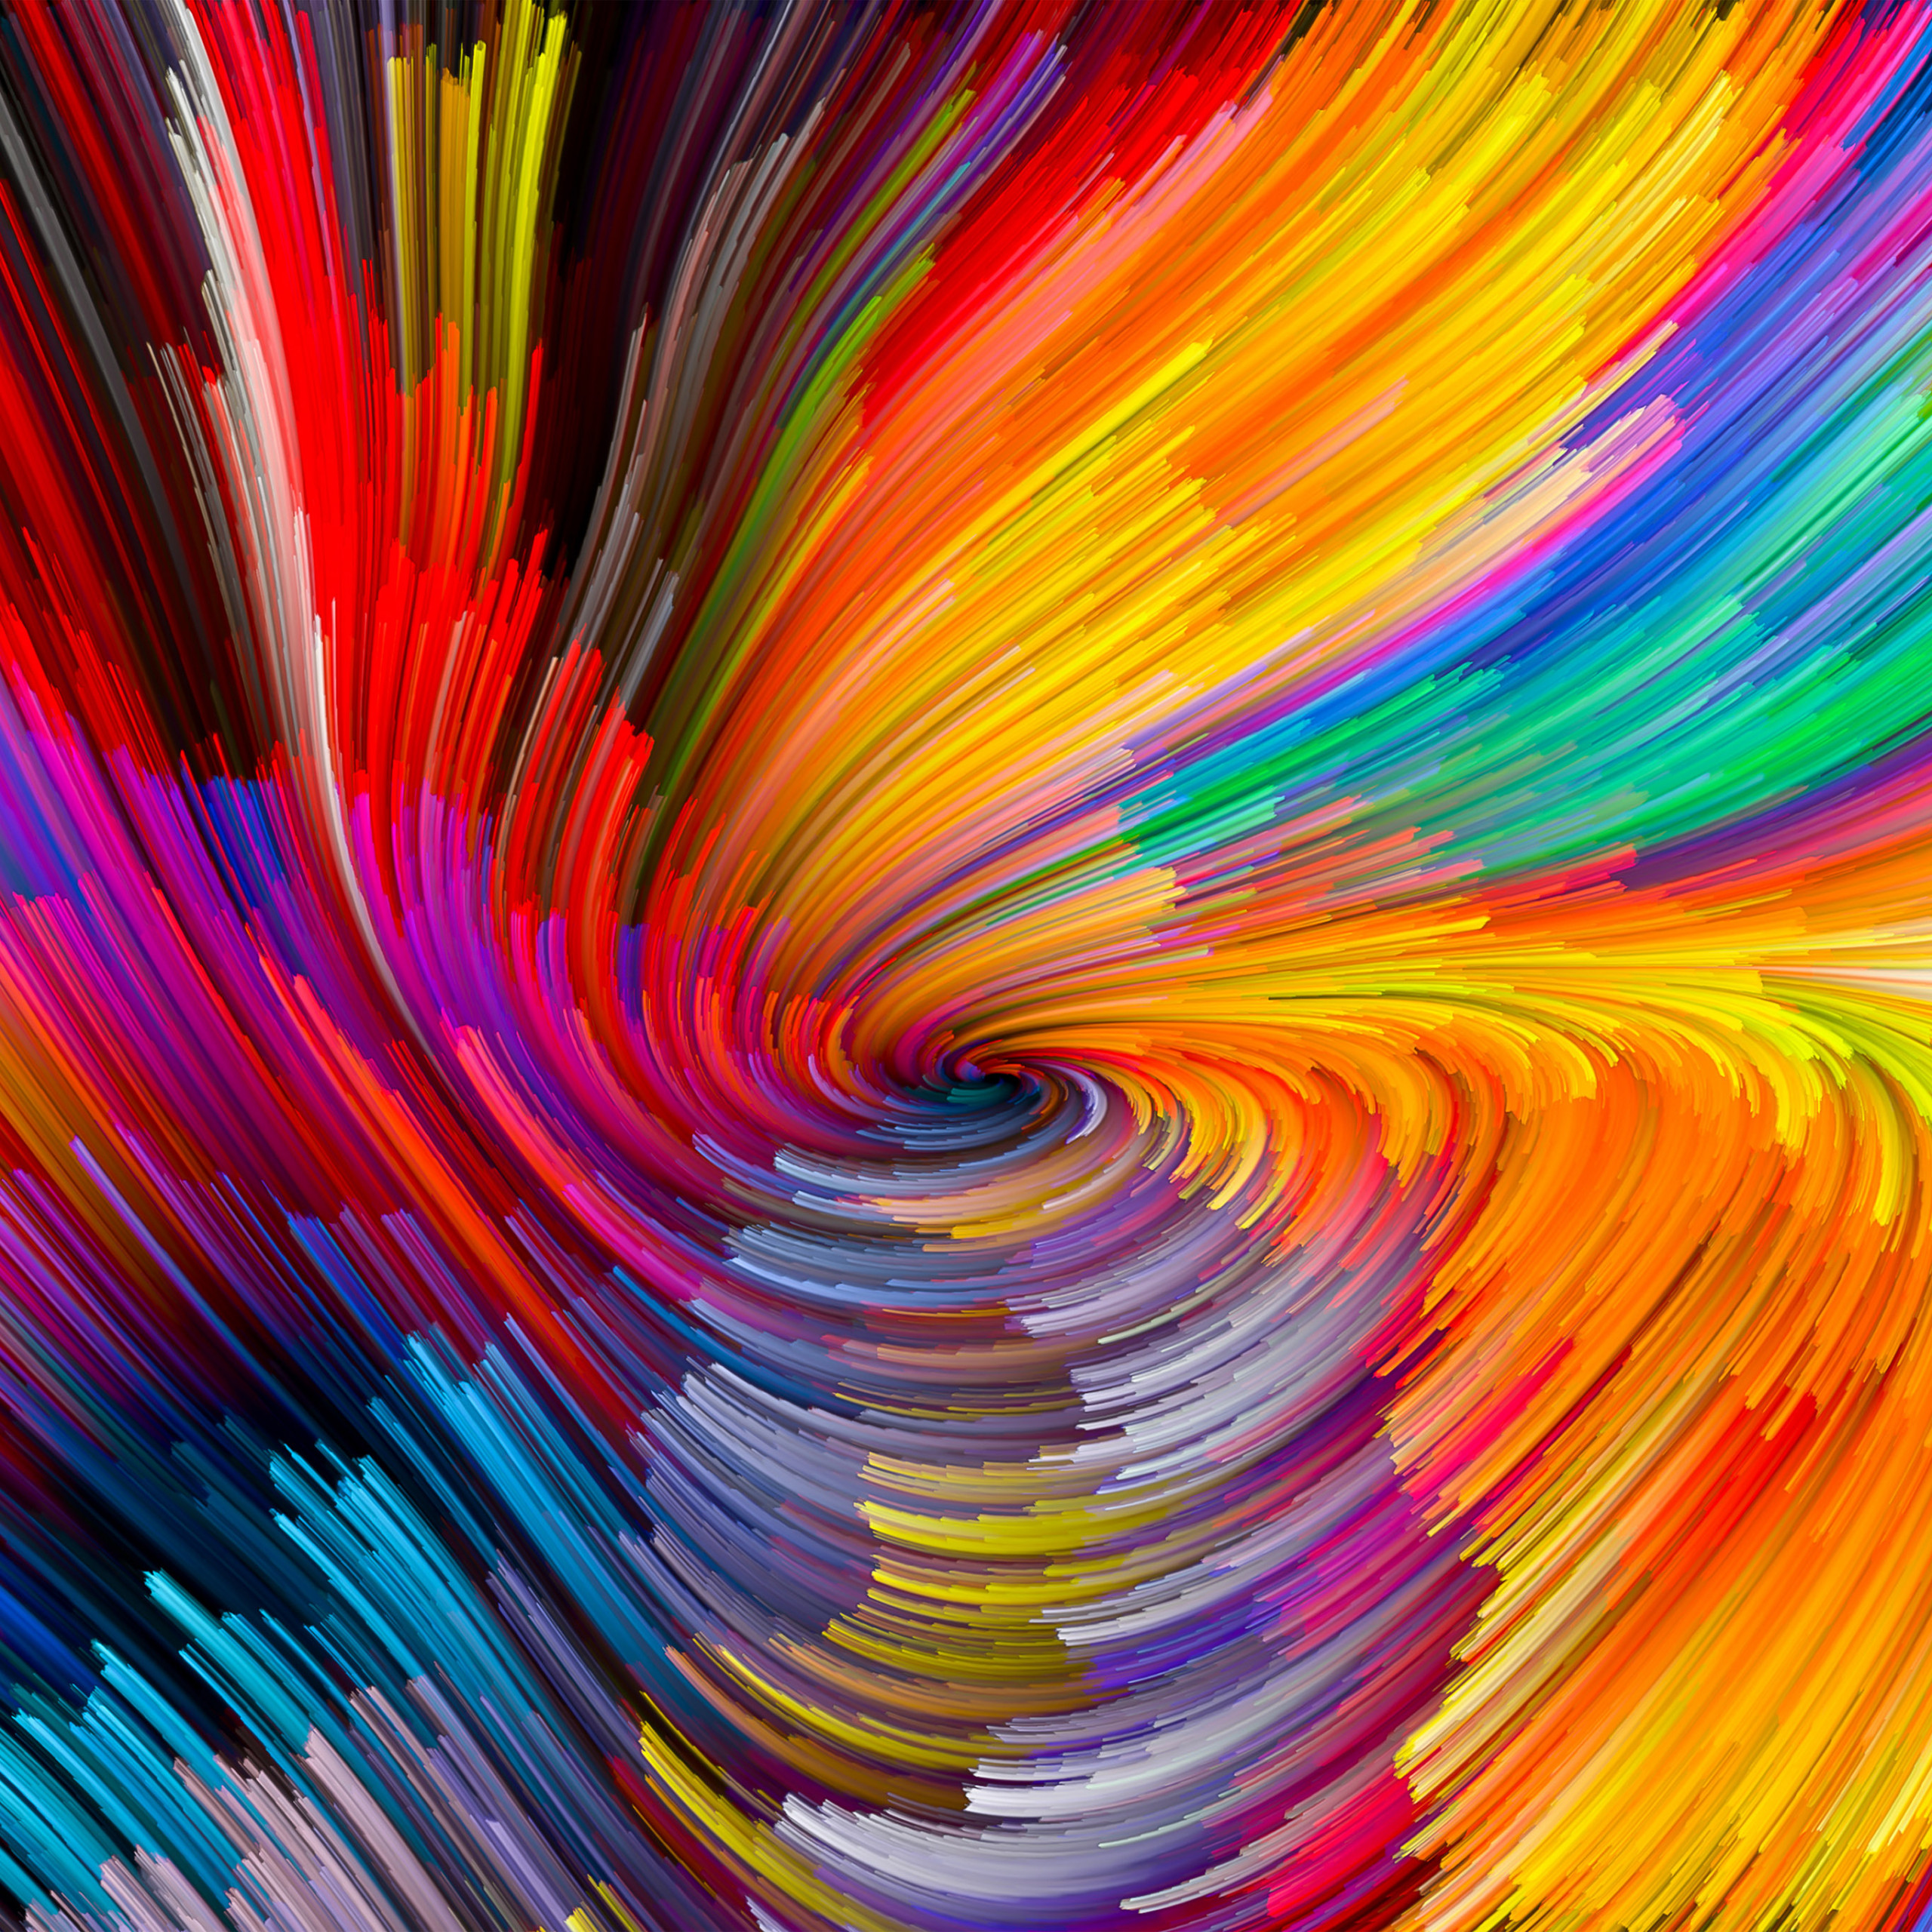 papers vy10 digital abstract line color rainbow pattern background 40 wallpaper